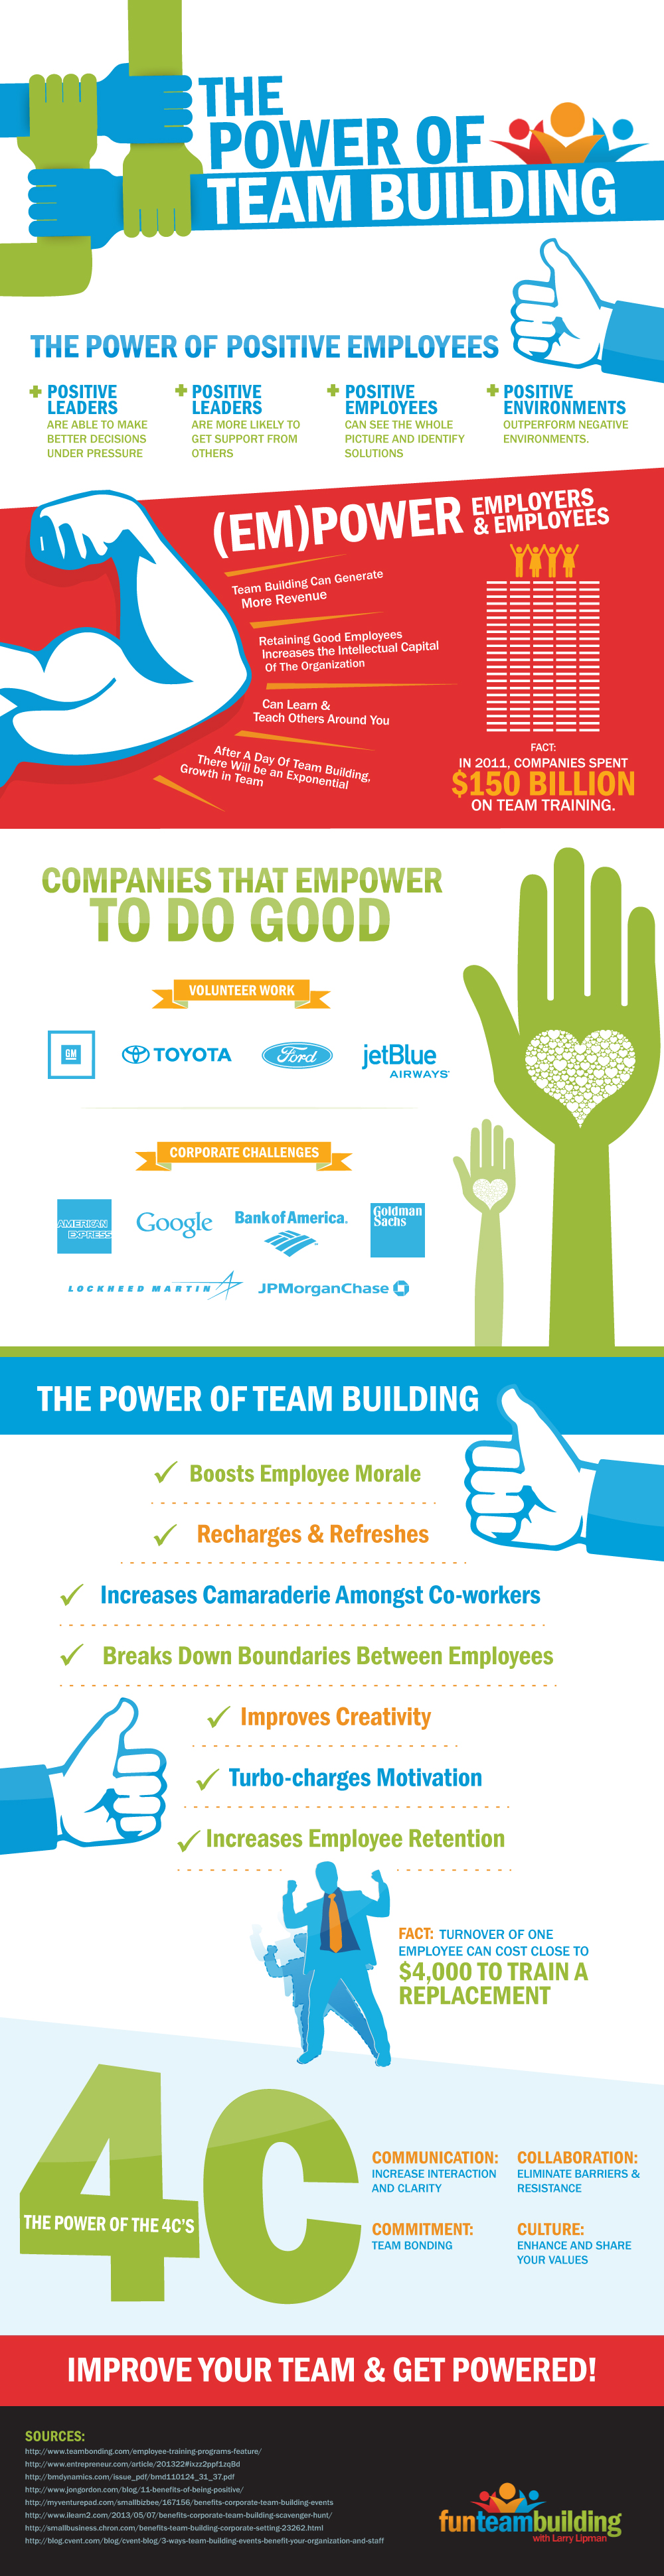 FunTeam Power of Team Building Infographic